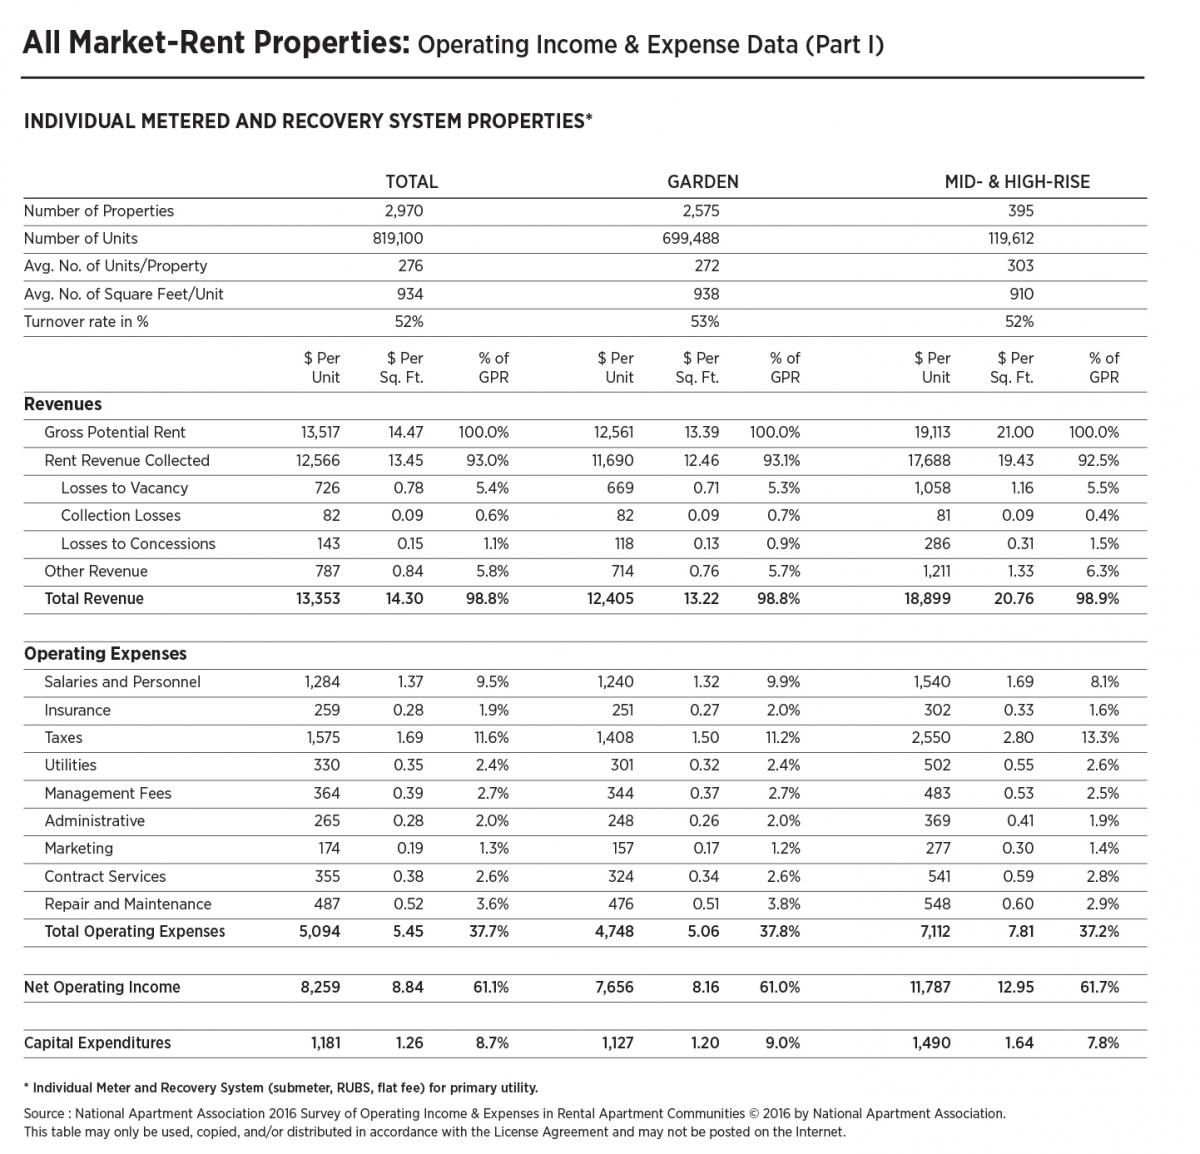 Naa Survey Of Operating Income Amp Expenses In Rental